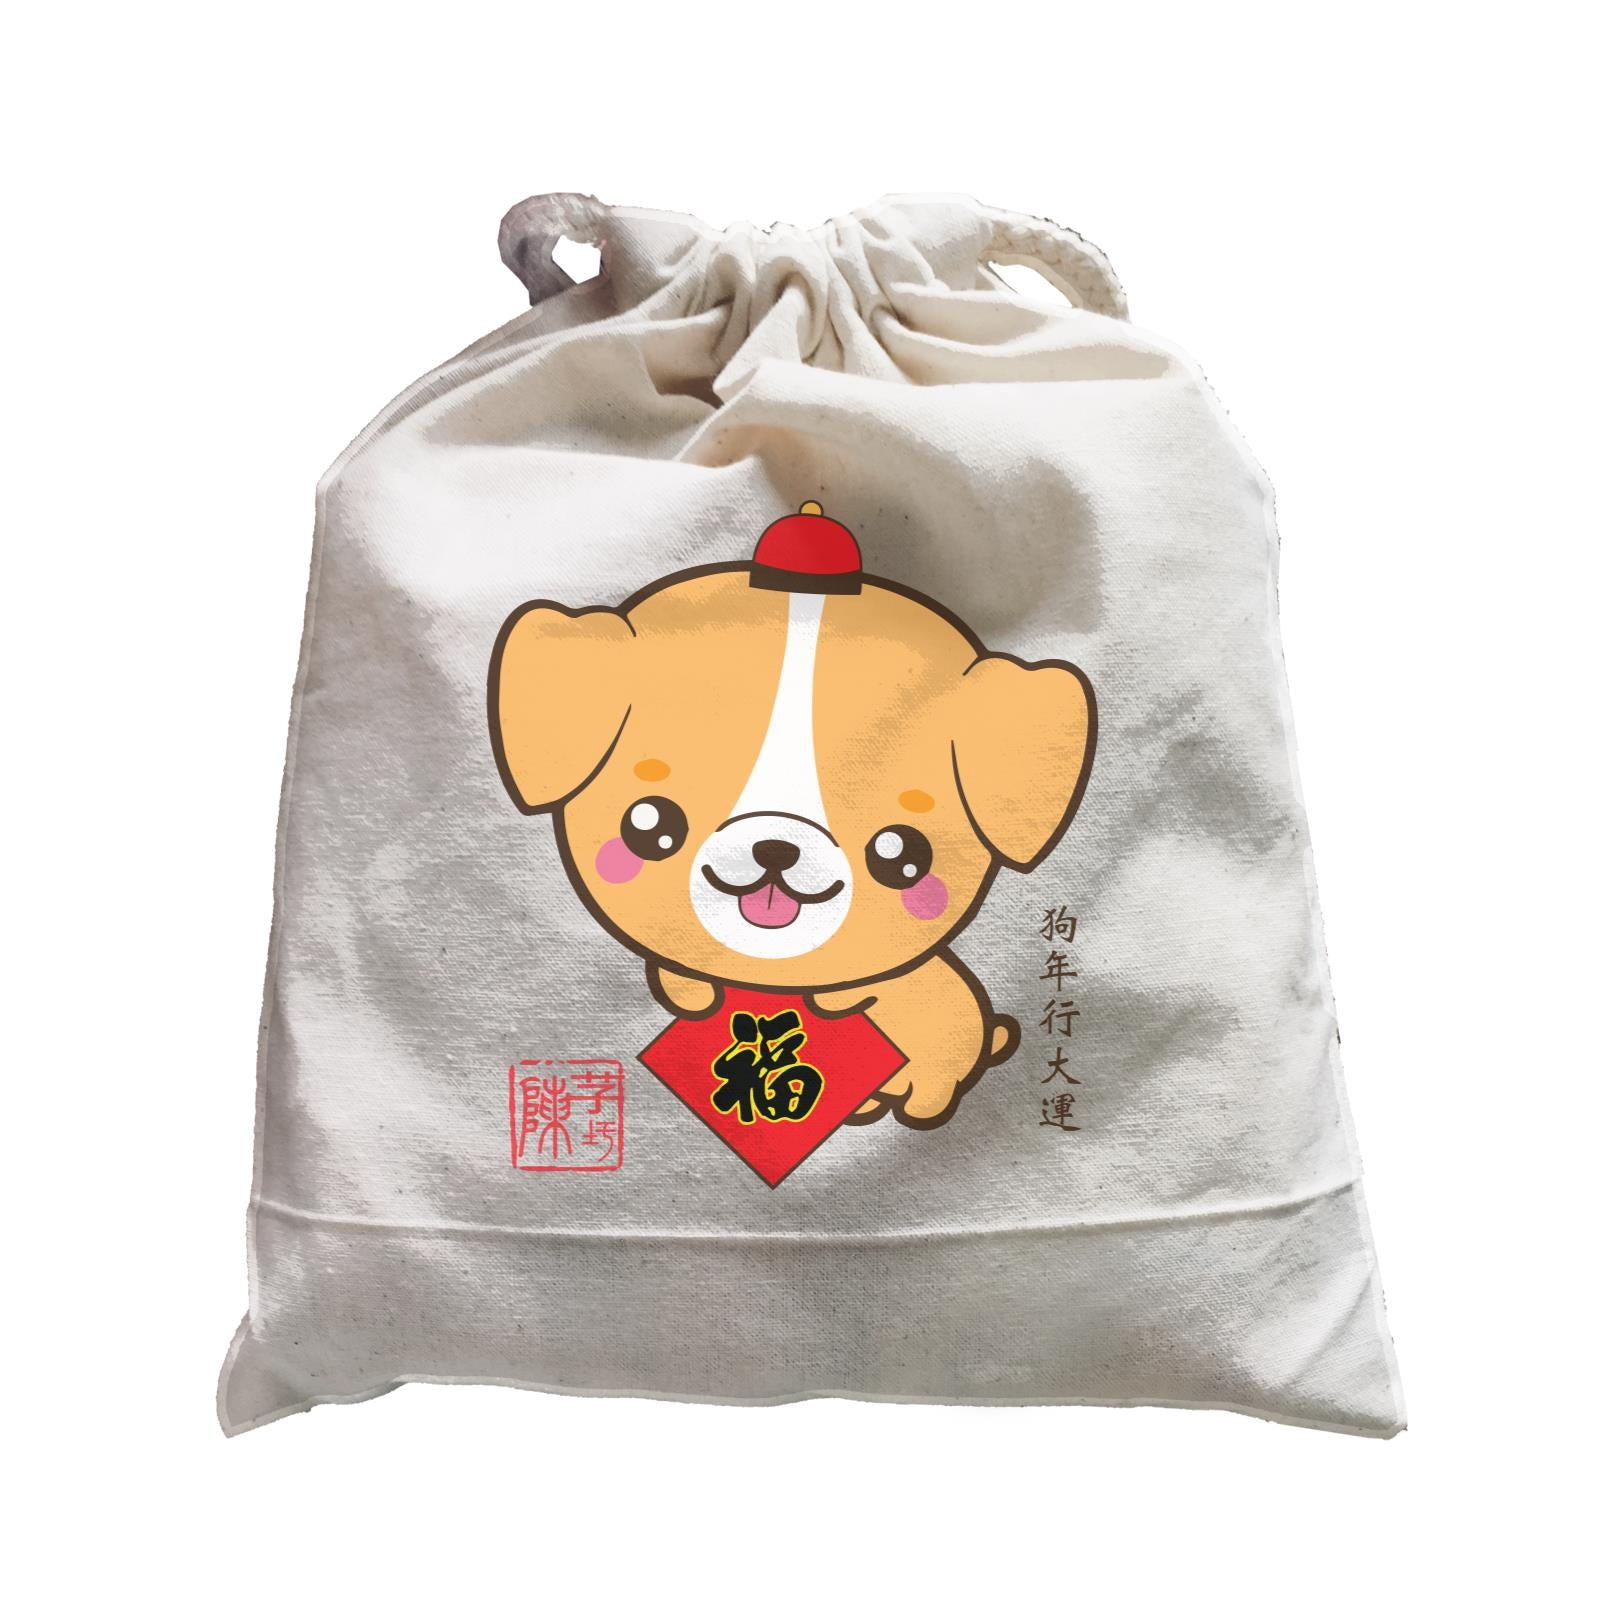 Chinese New Year Cute Dog with WIsh Ang Pao Bag Satchel  Personalizable Designs